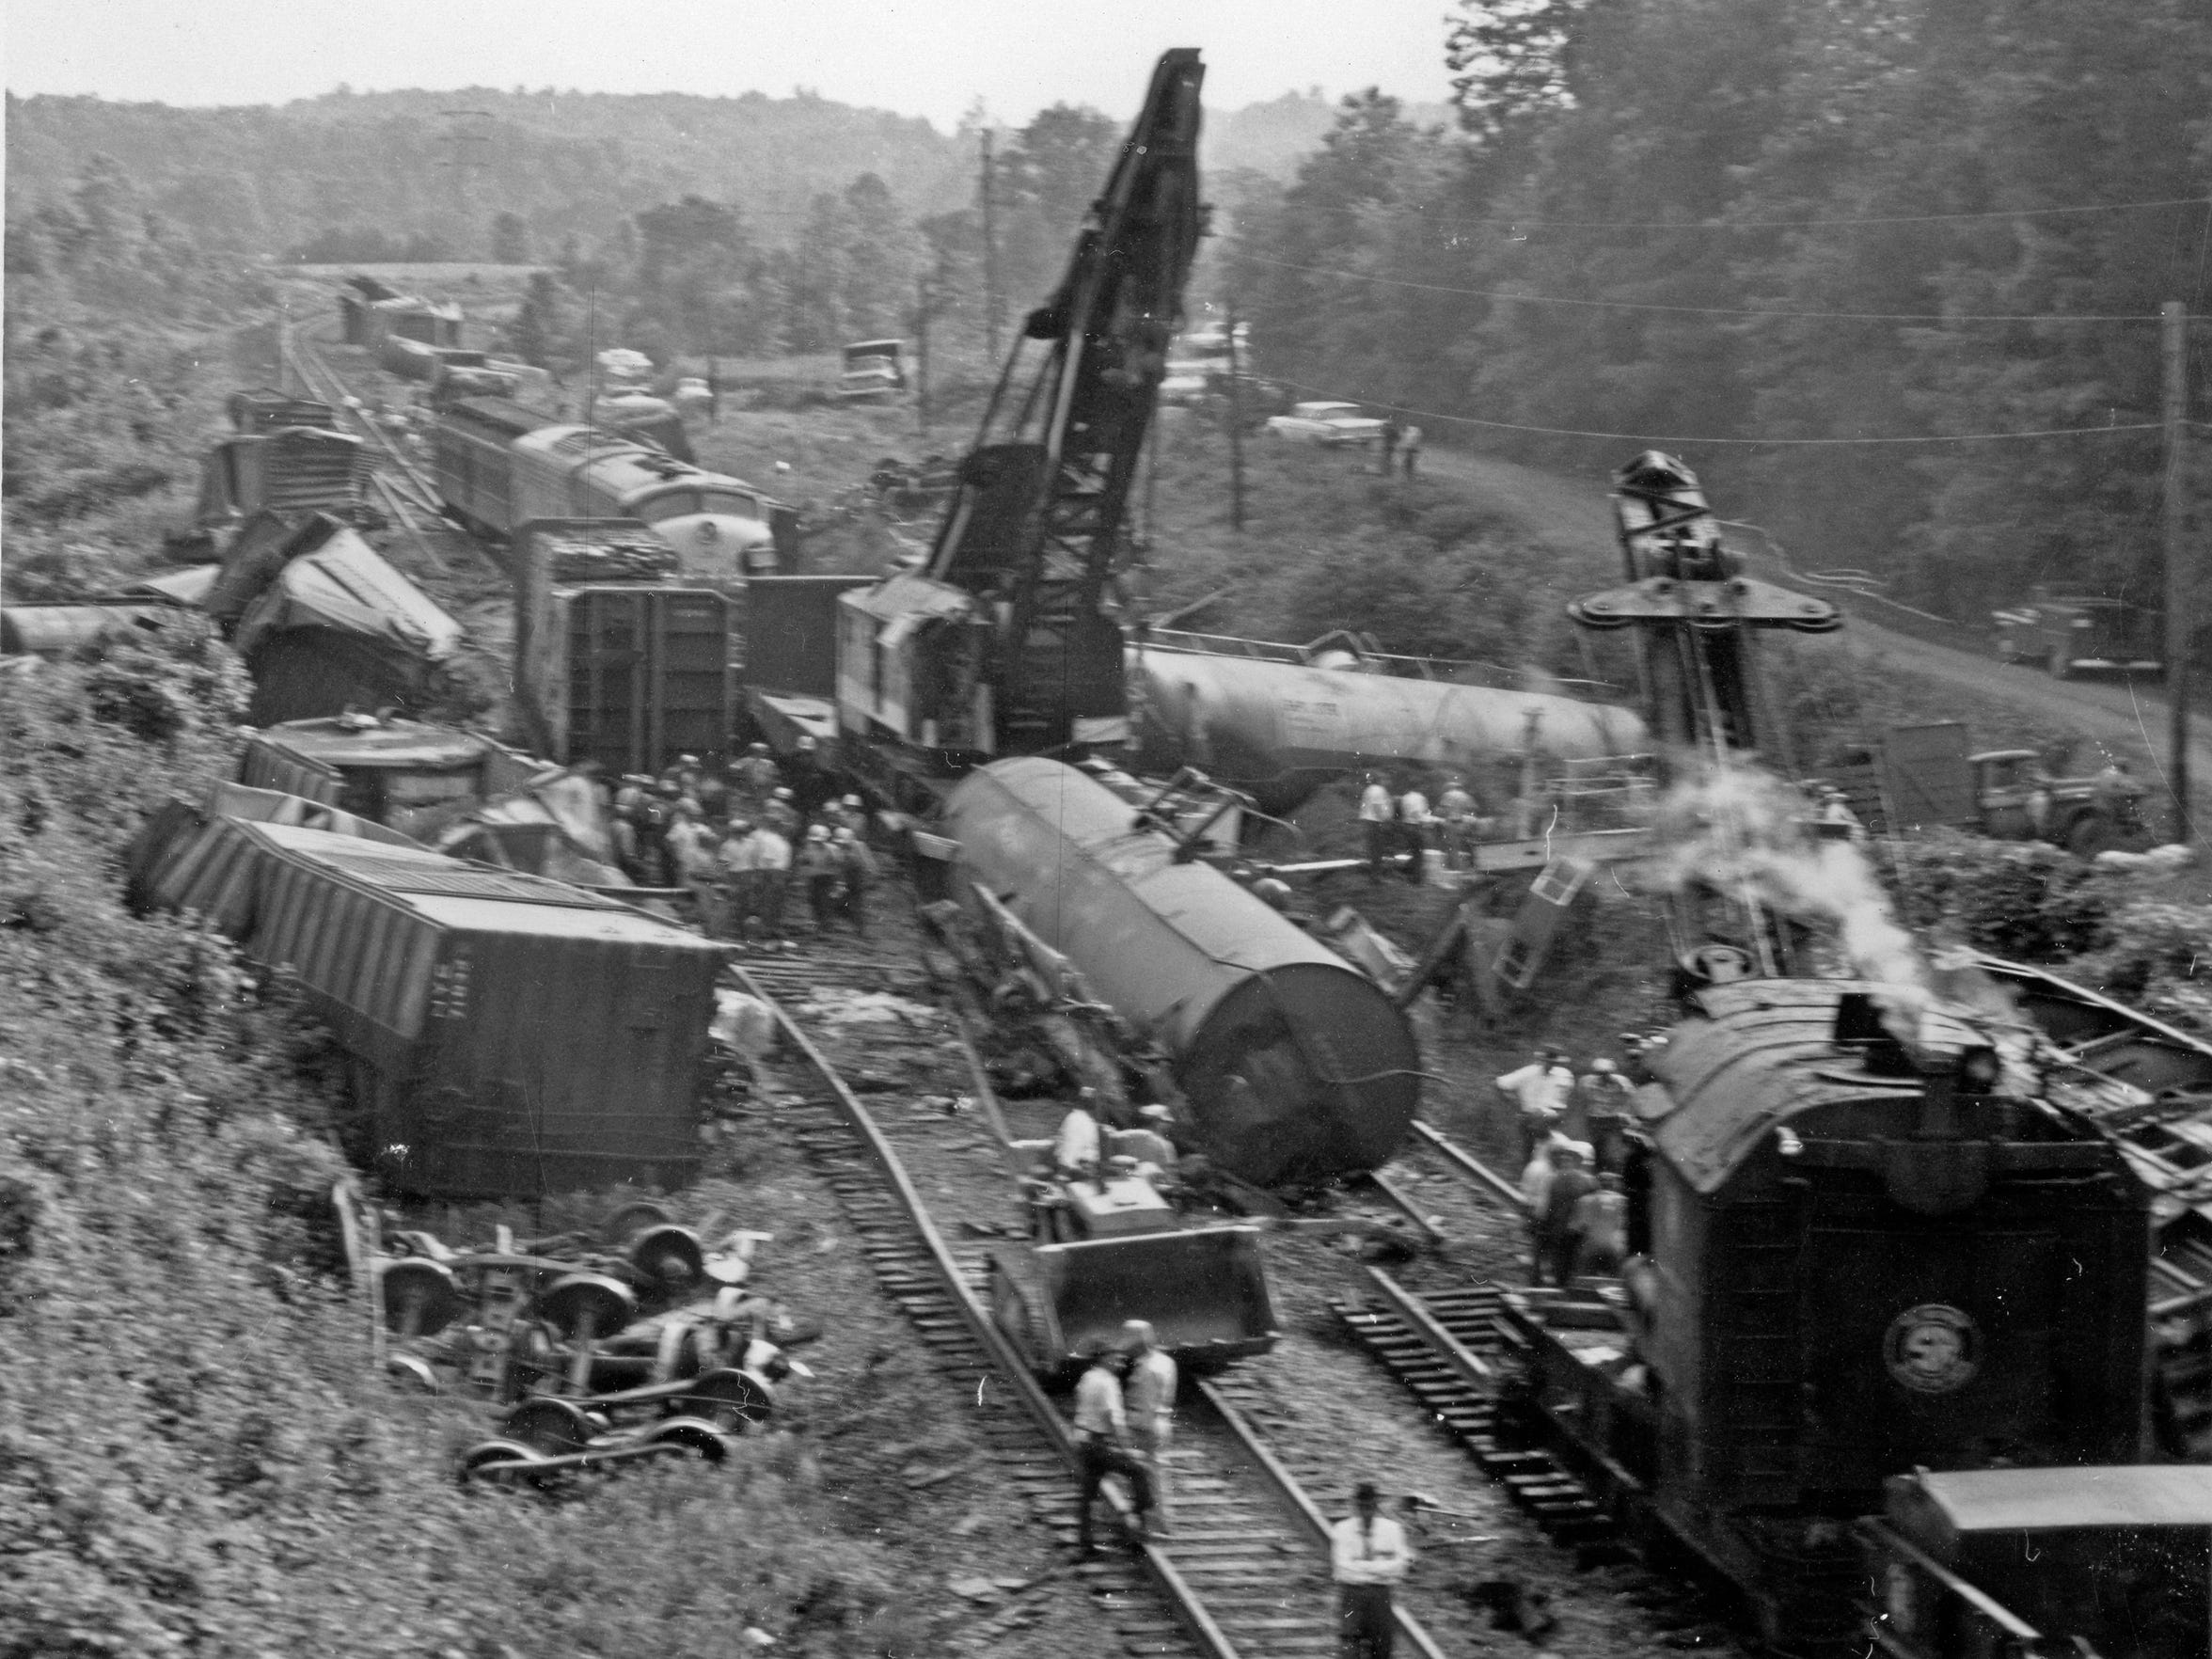 A pair of cranes working to clear wreckage at the Clemson